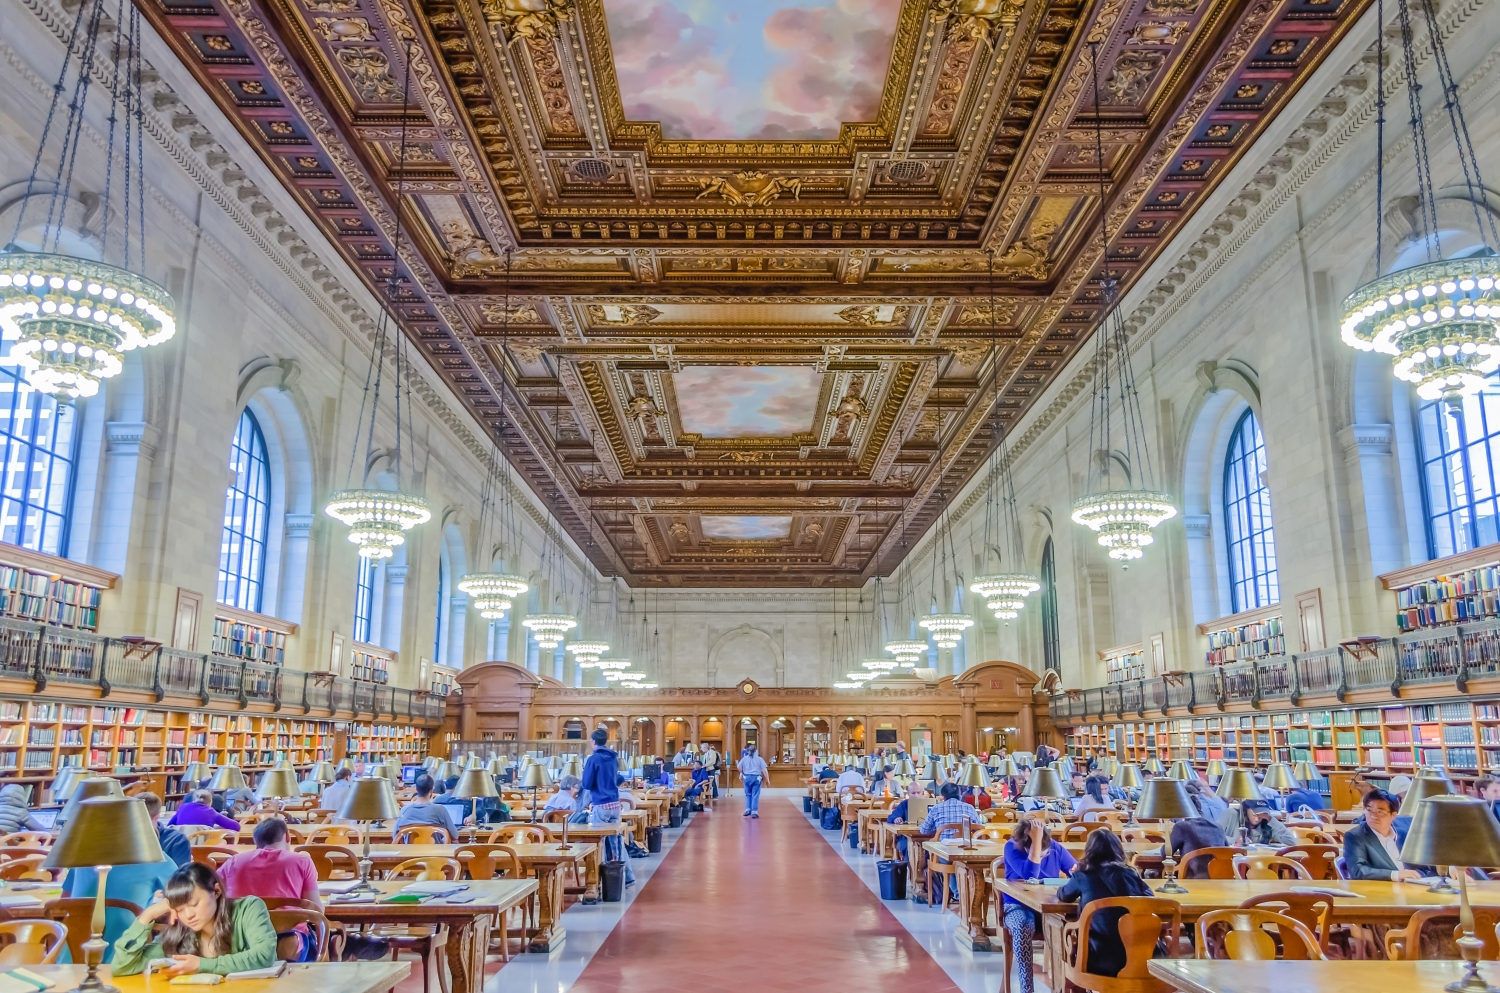 Interior of the New York Public Library, New York